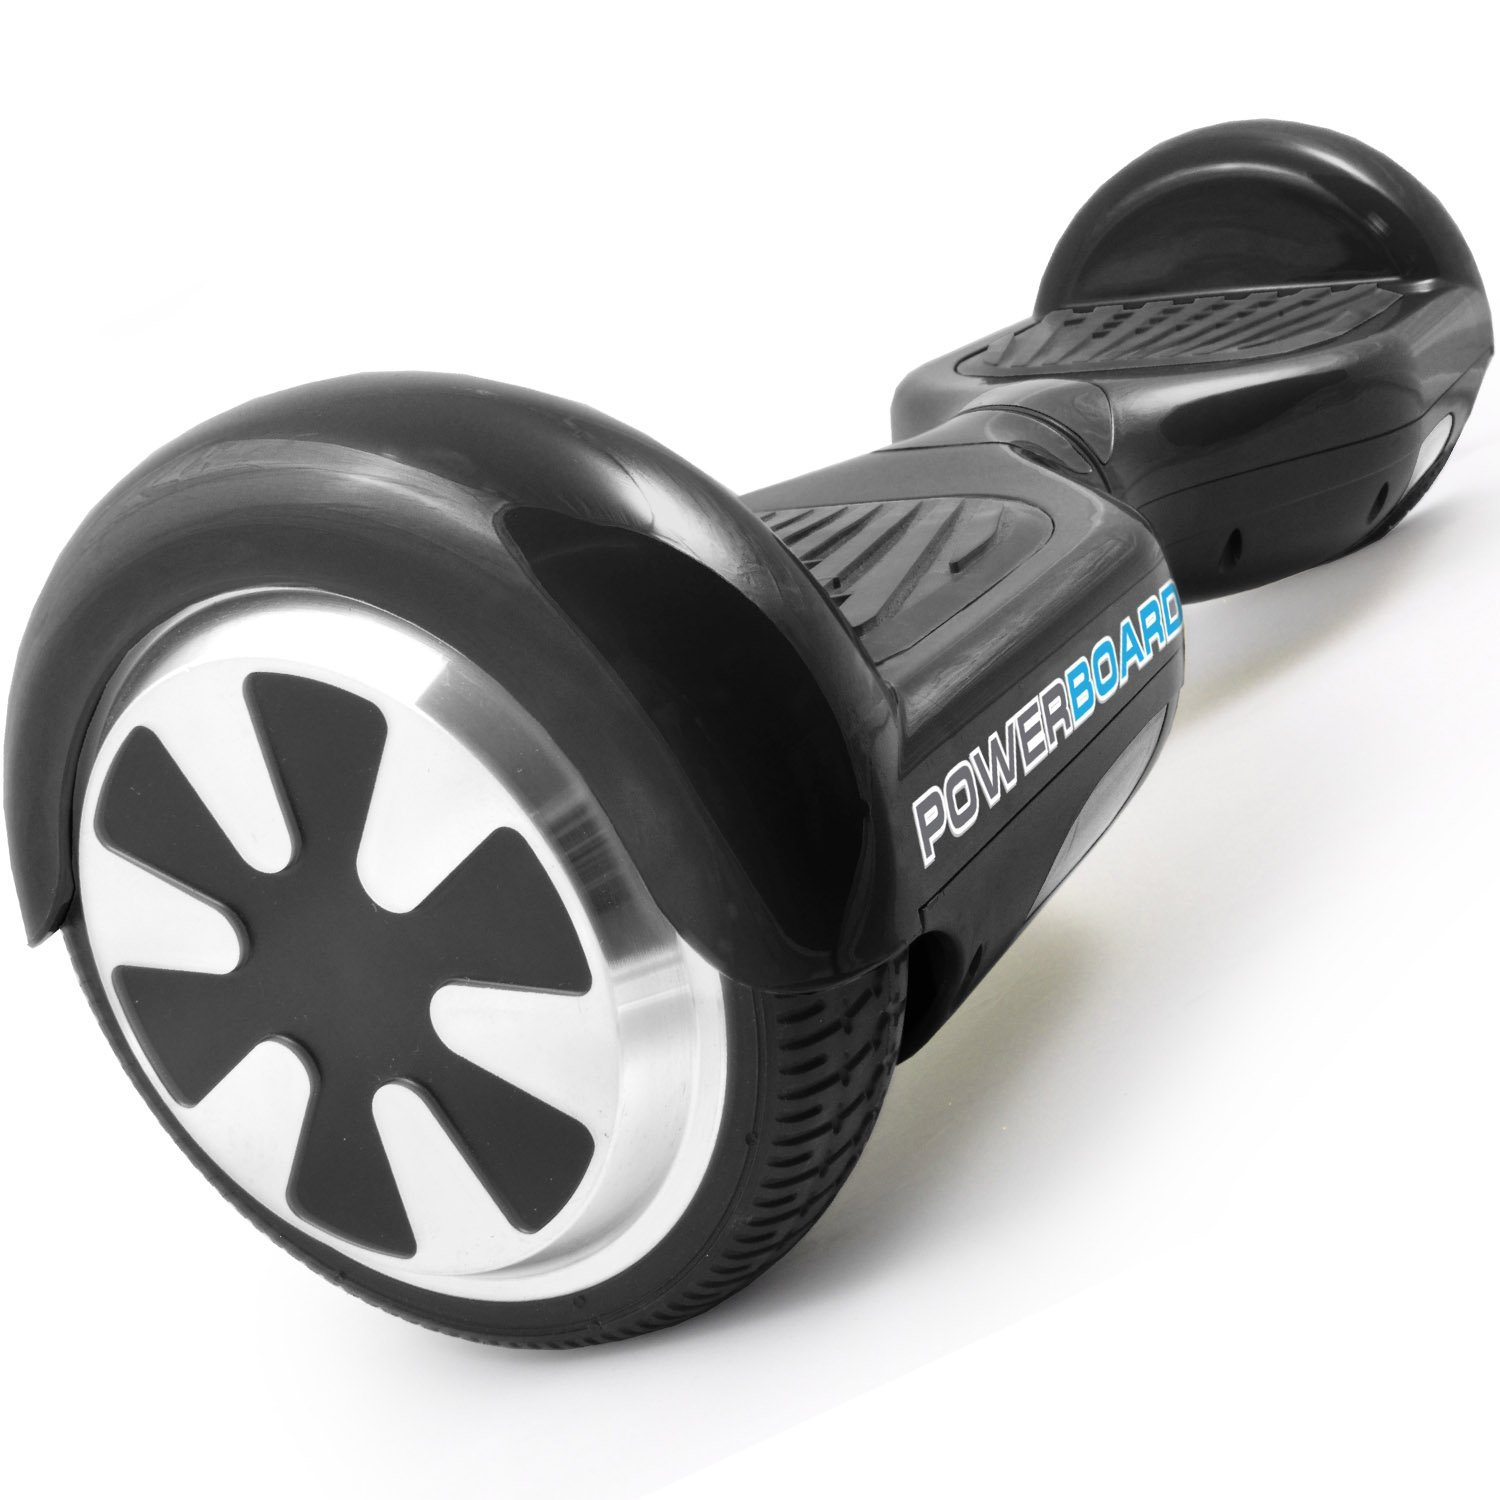 Powerboard hoverboard review